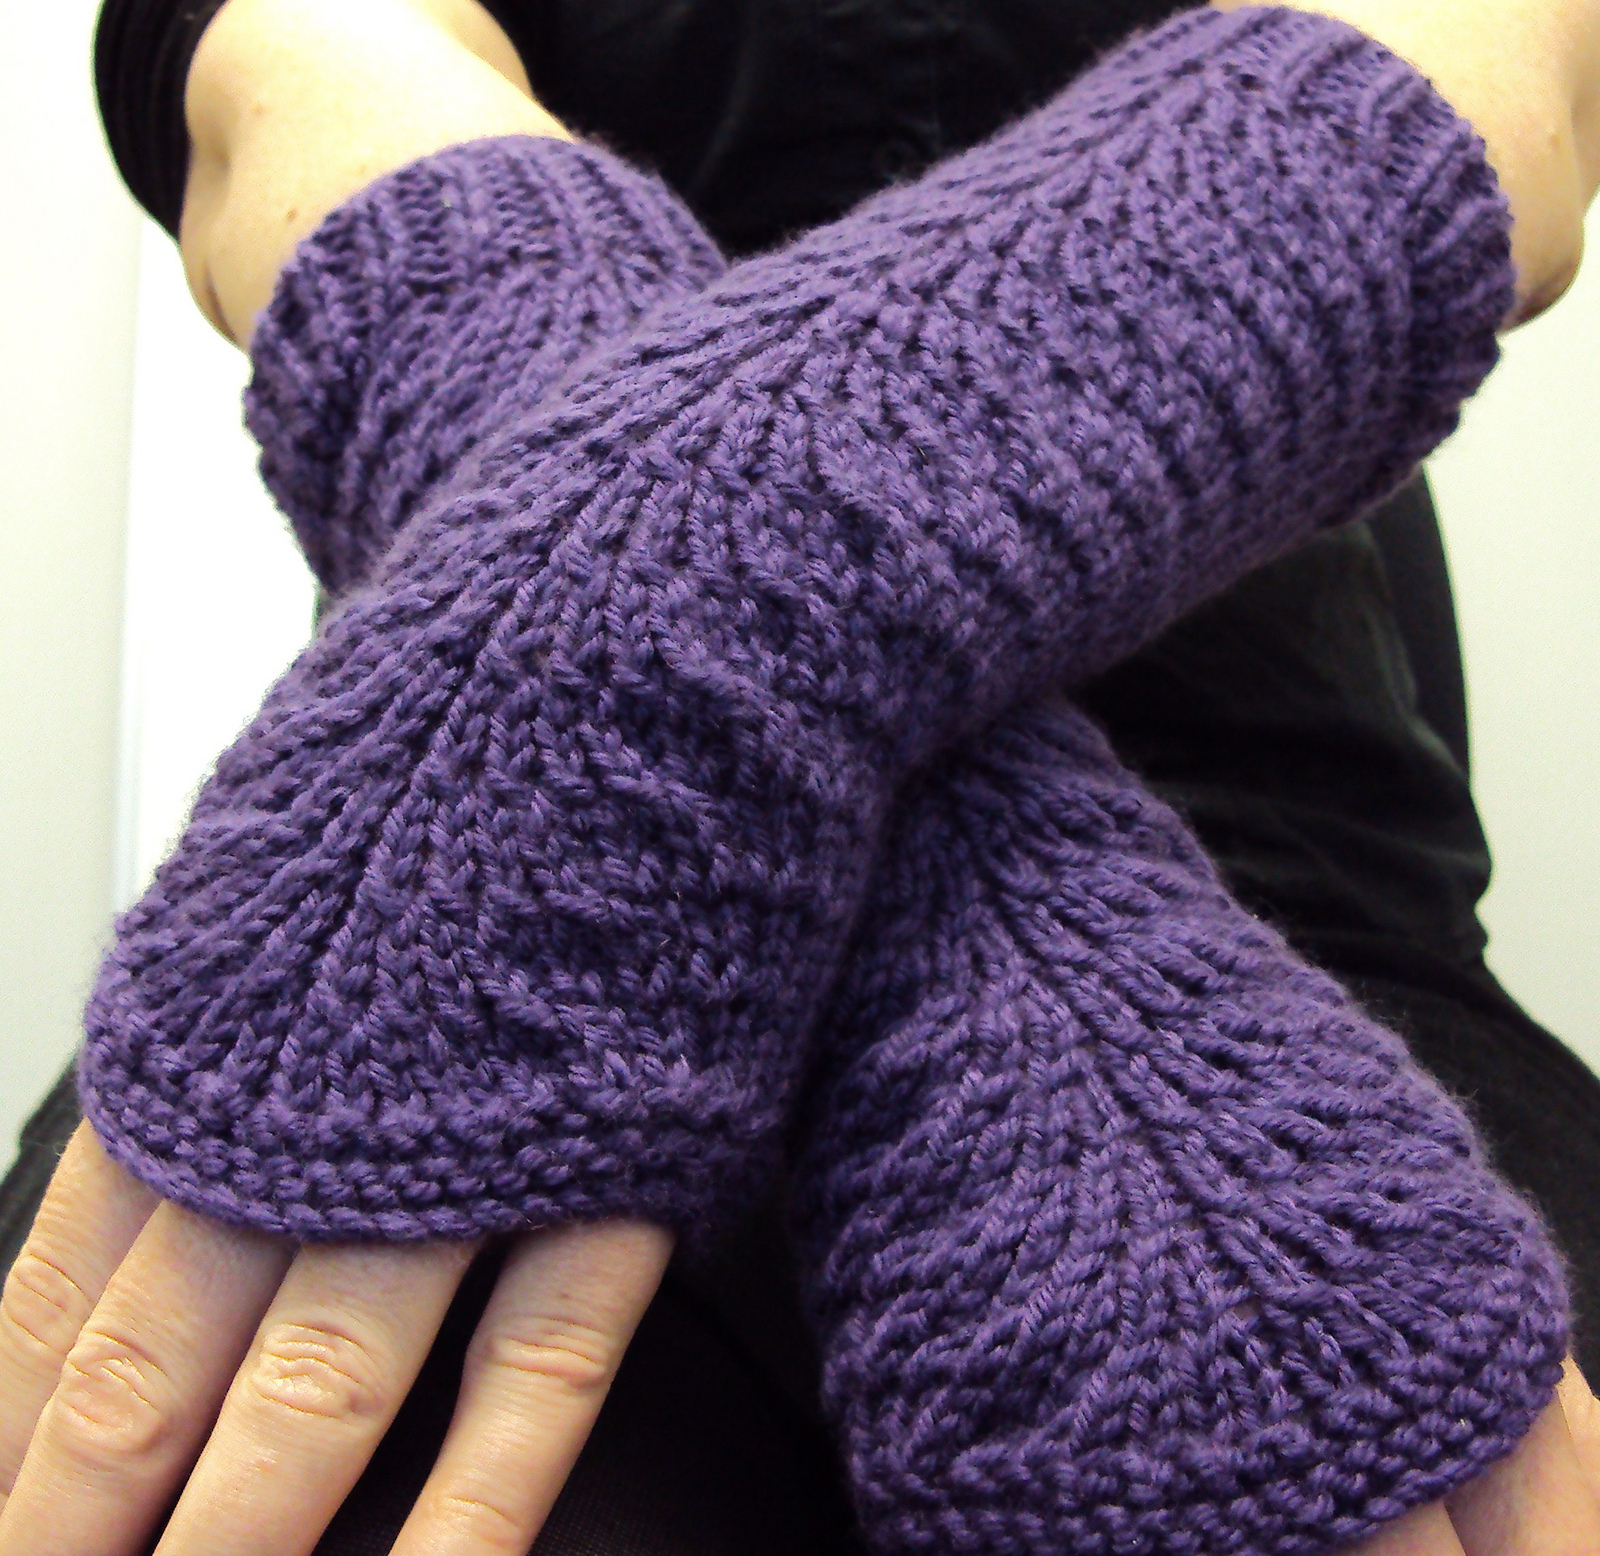 Free Knitted Glove Patterns Easy Mitts Knit Flat Knitting Patterns In The Loop Knitting